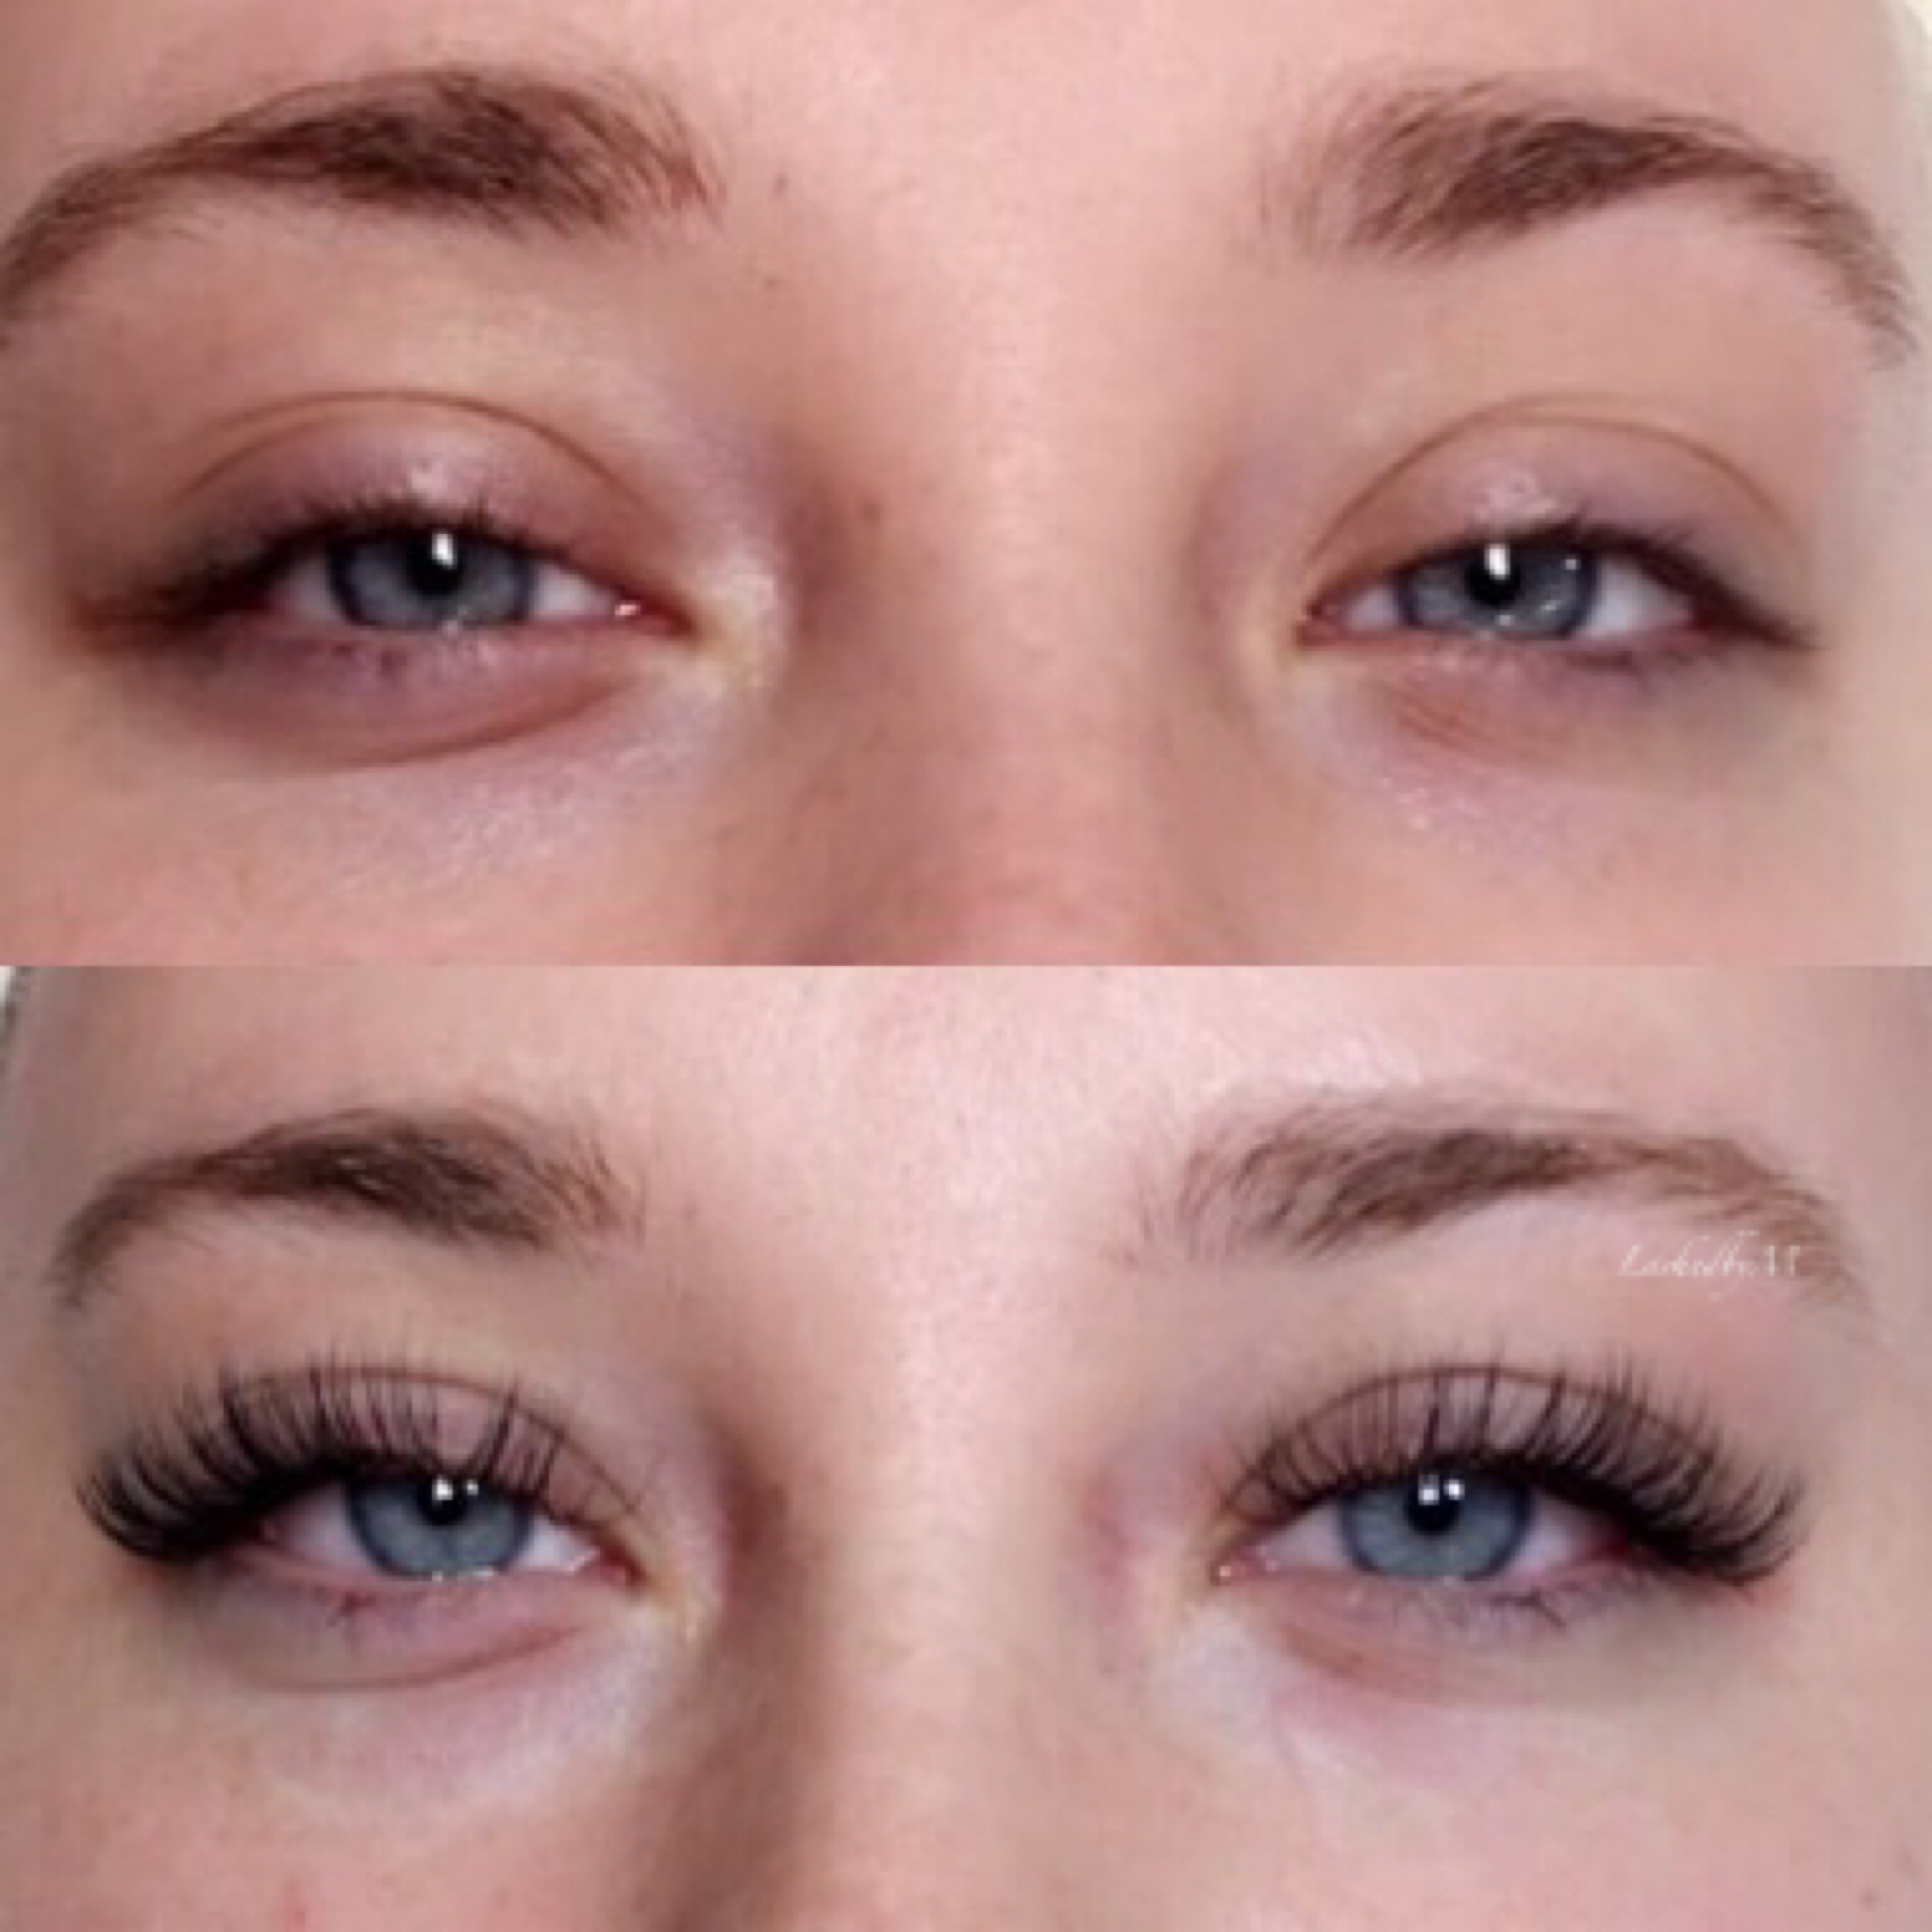 b9380efba77 Before and after lash extensions by Monique Rodgers @lashedbym on IG ...